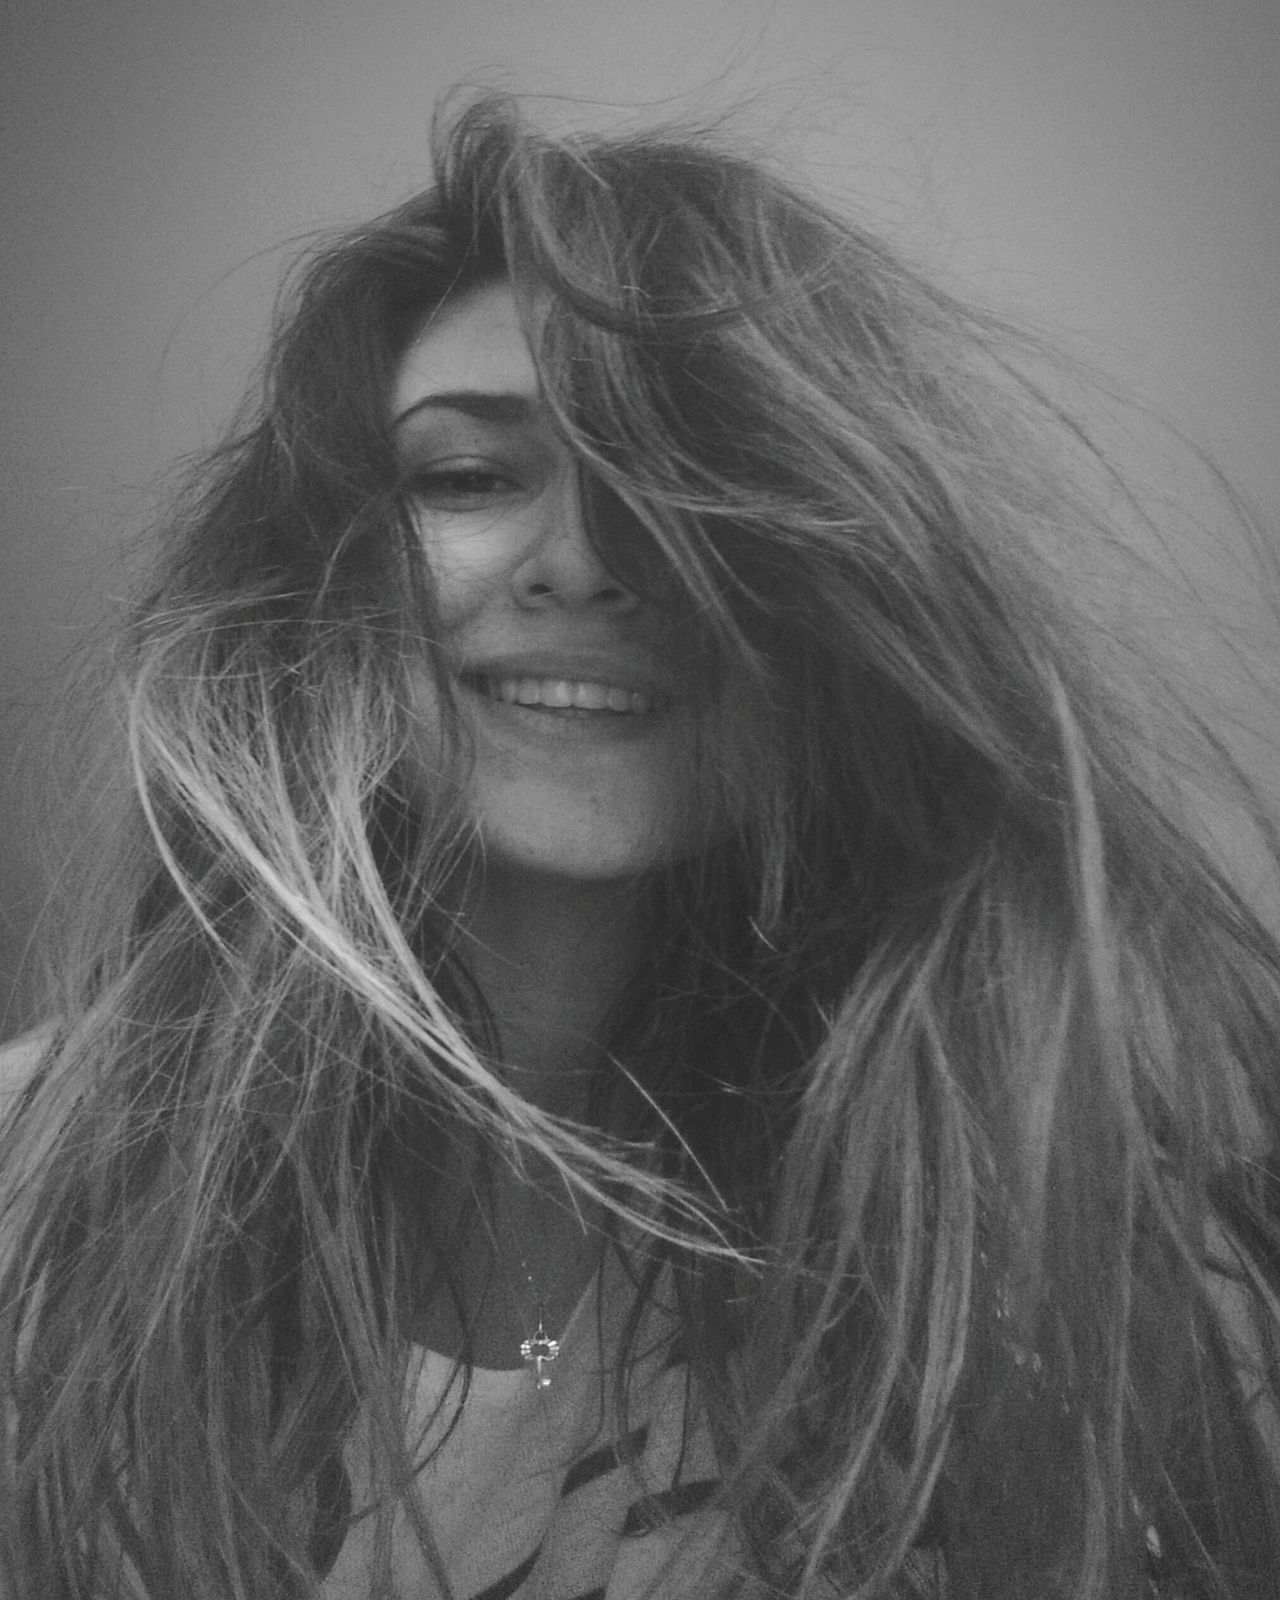 Let Your Hair Down Selfie Portrait Hair Loose Hair Smile Looking At Camera Monochrome Photography Uniqueness Uniqueness Women Around The World